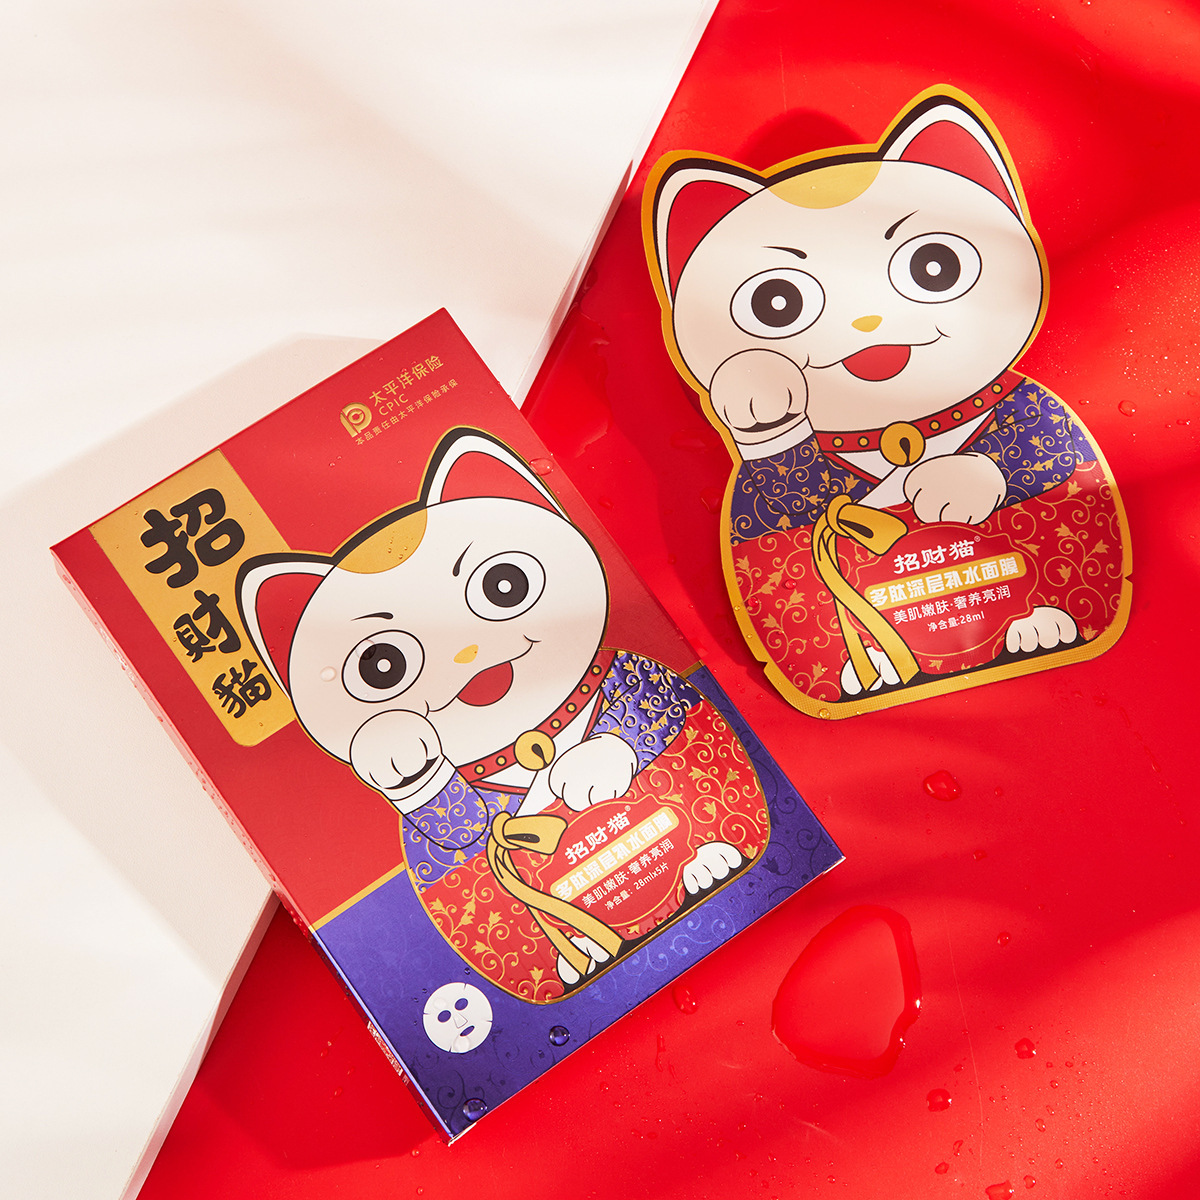 Shaking Sound Live Streaming on Kwai Lucky Cat Polypeptide Deep Hydrating Mask5Tablets Moisturizing and Nourishing Skin